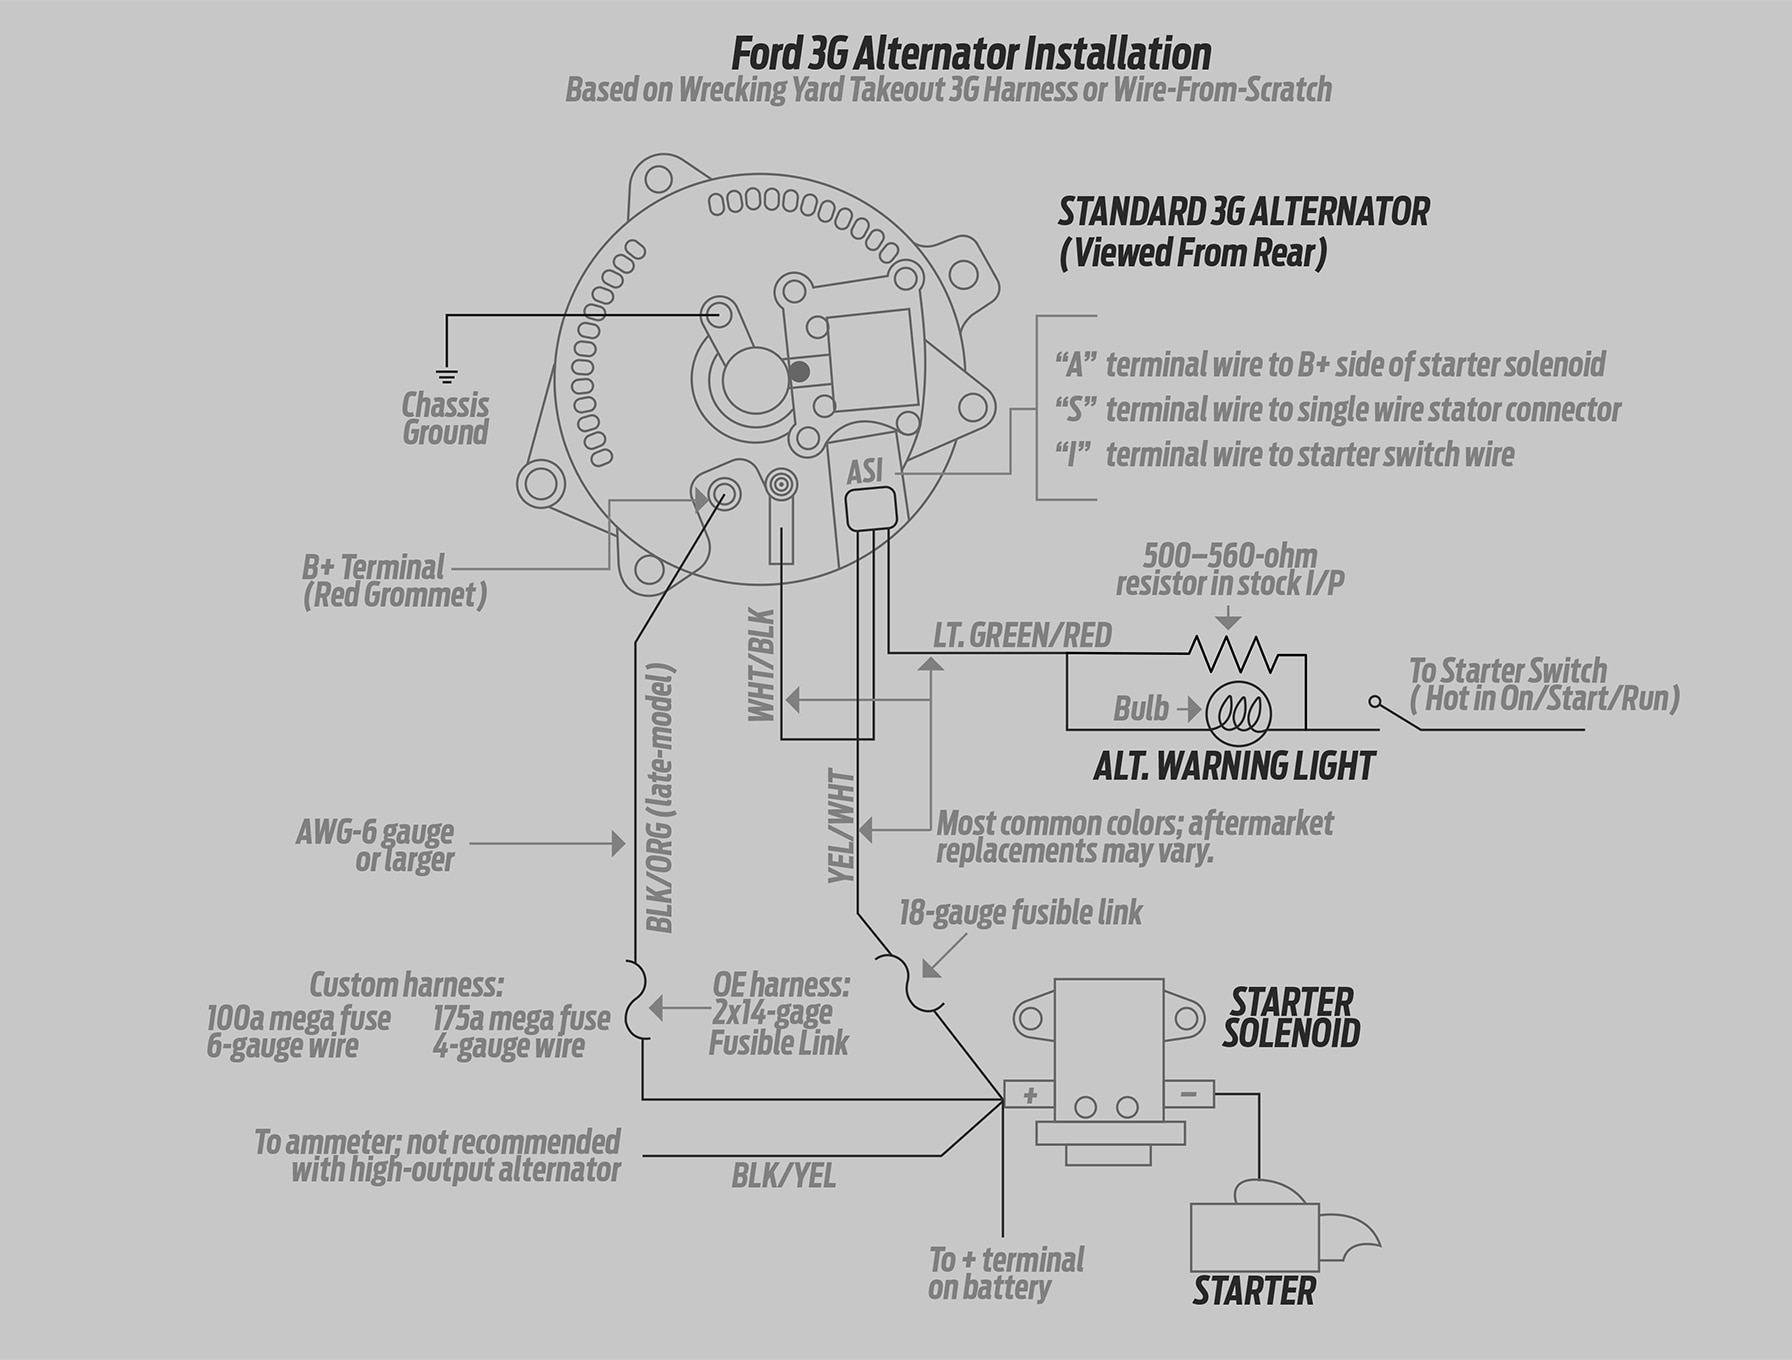 Ford 1g Alternator Wiring